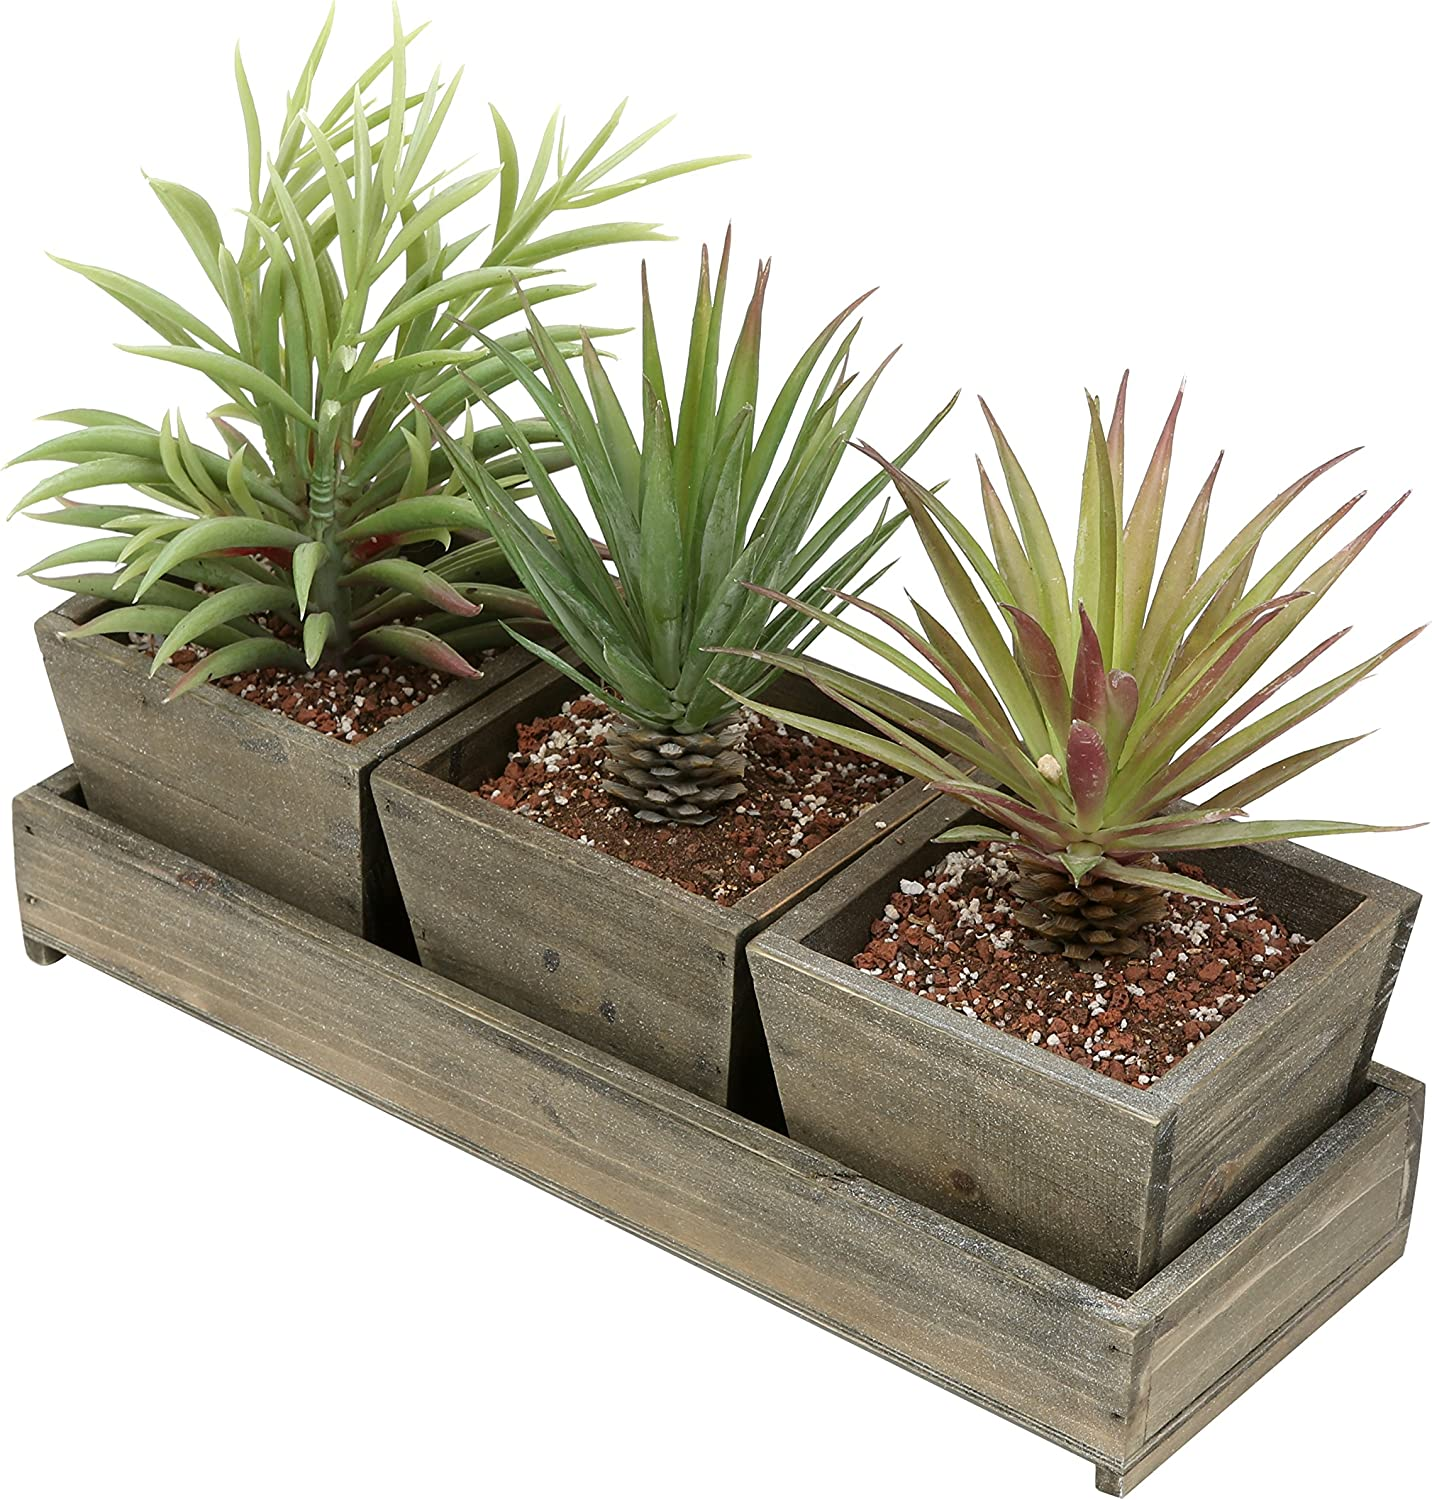 Windowsill Flower Pots Country Rustic Brown Wood Succulent Planters Set of 2